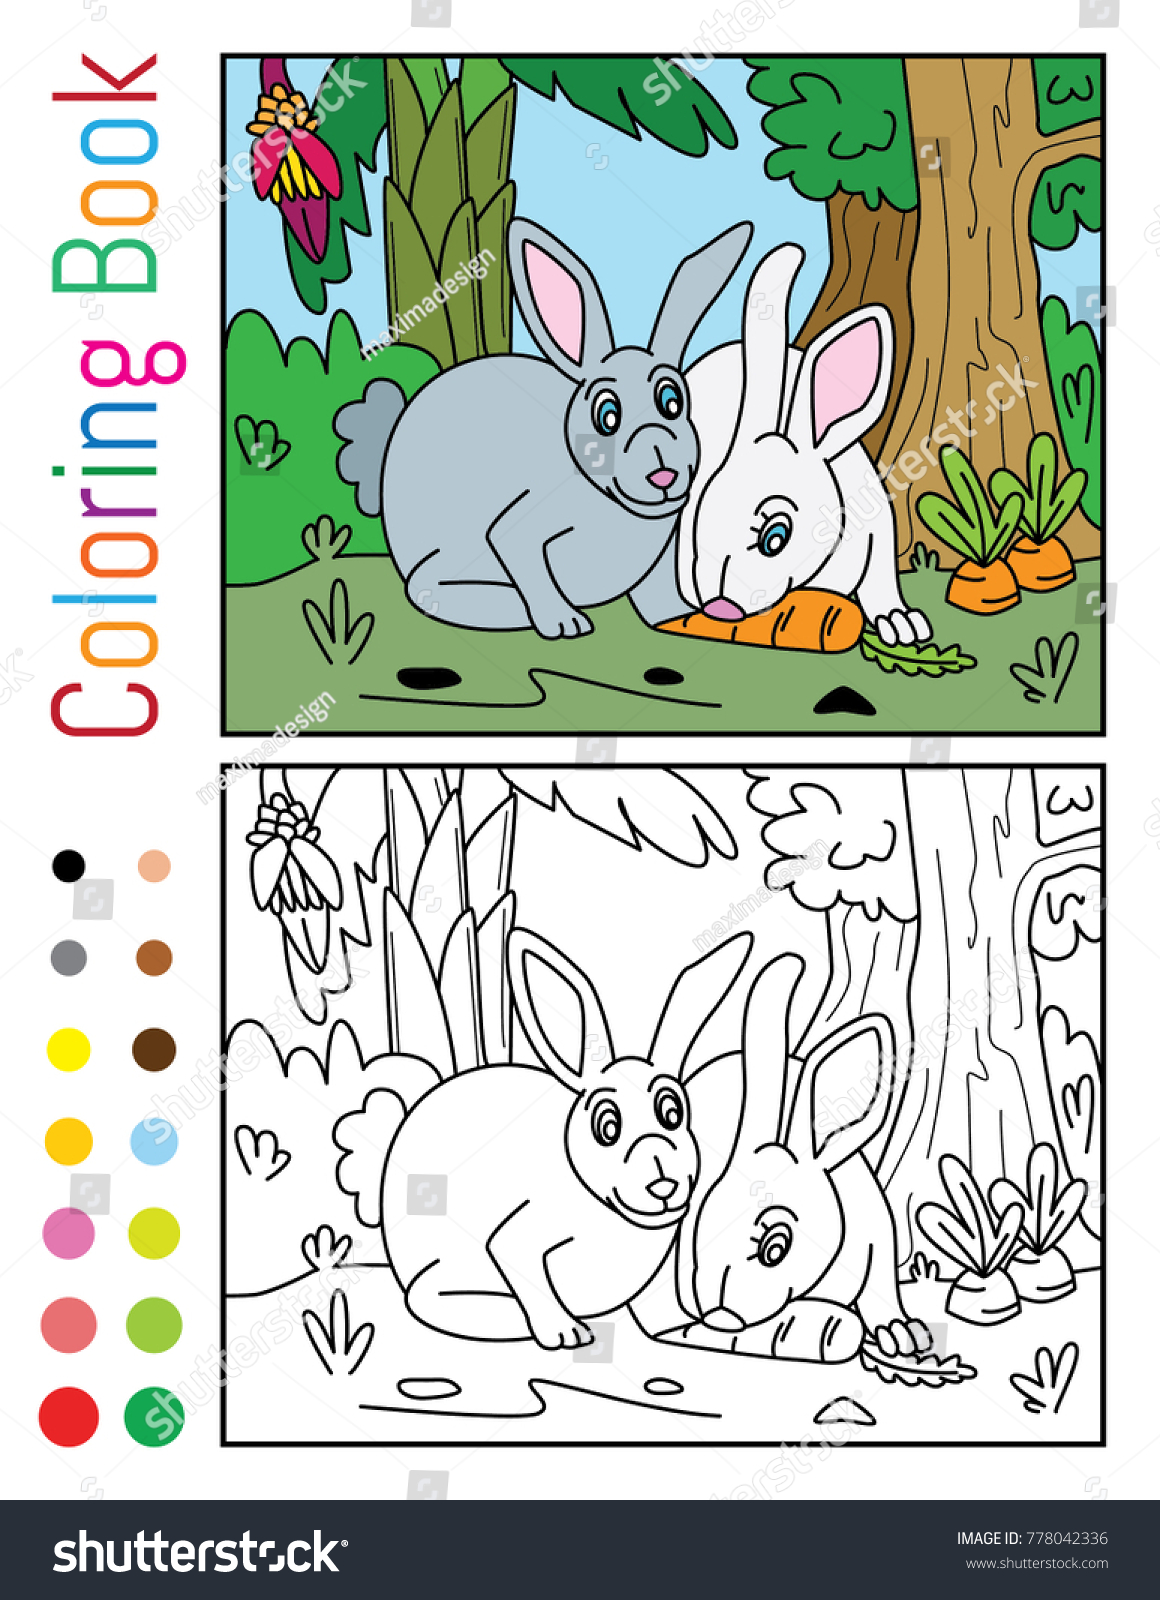 Cute Rabbits Eating Carrot Coloring Book Stock Vector 778042336 ...